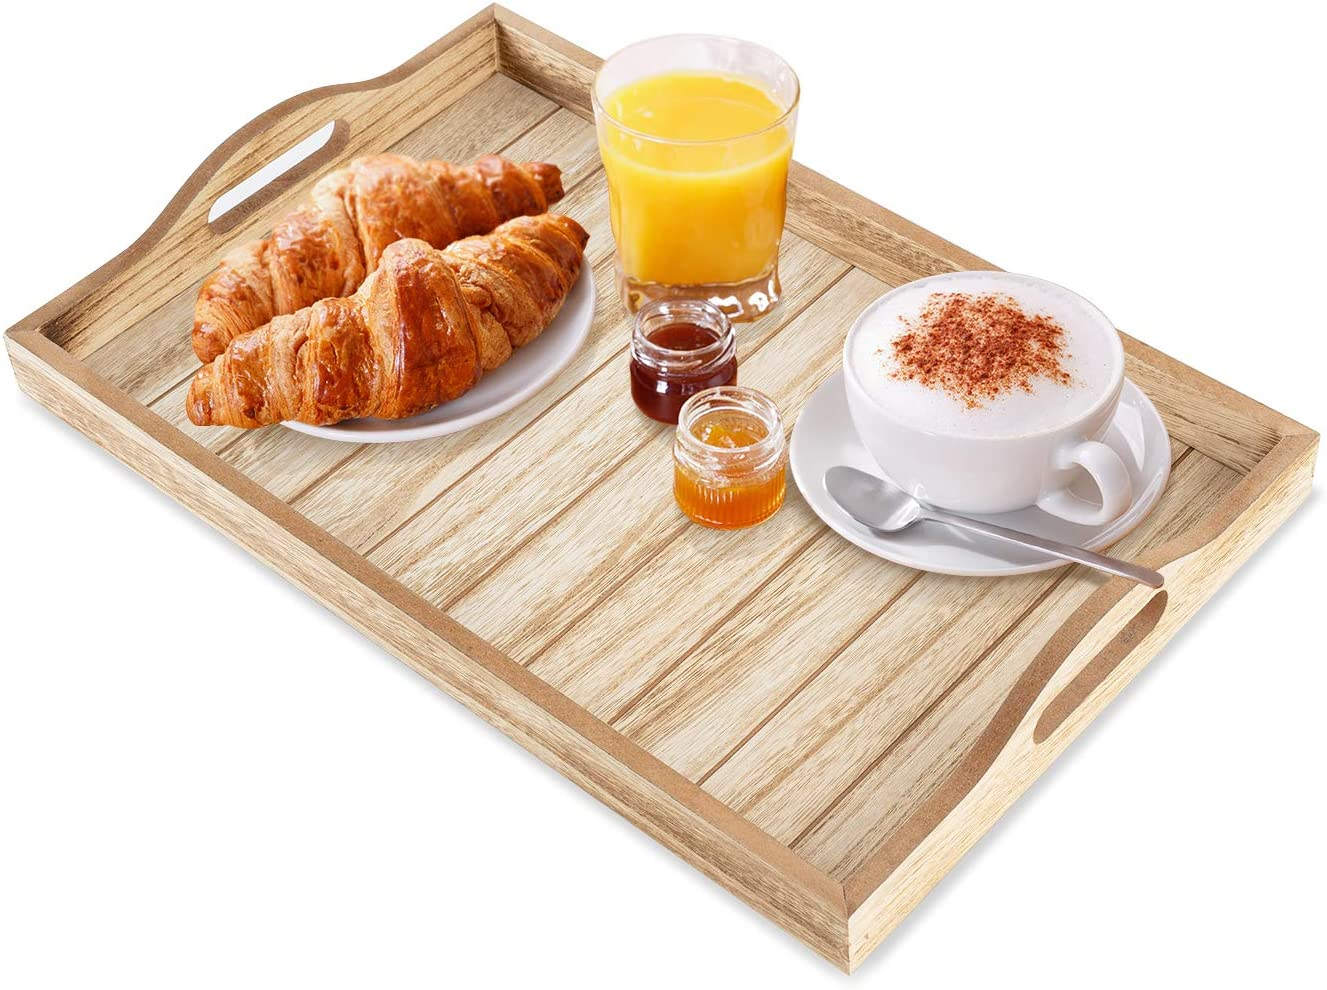 coffee table tray breakfast serving tray wooden tray with handles for ottoman premium quality and sturdy rustic design decorative